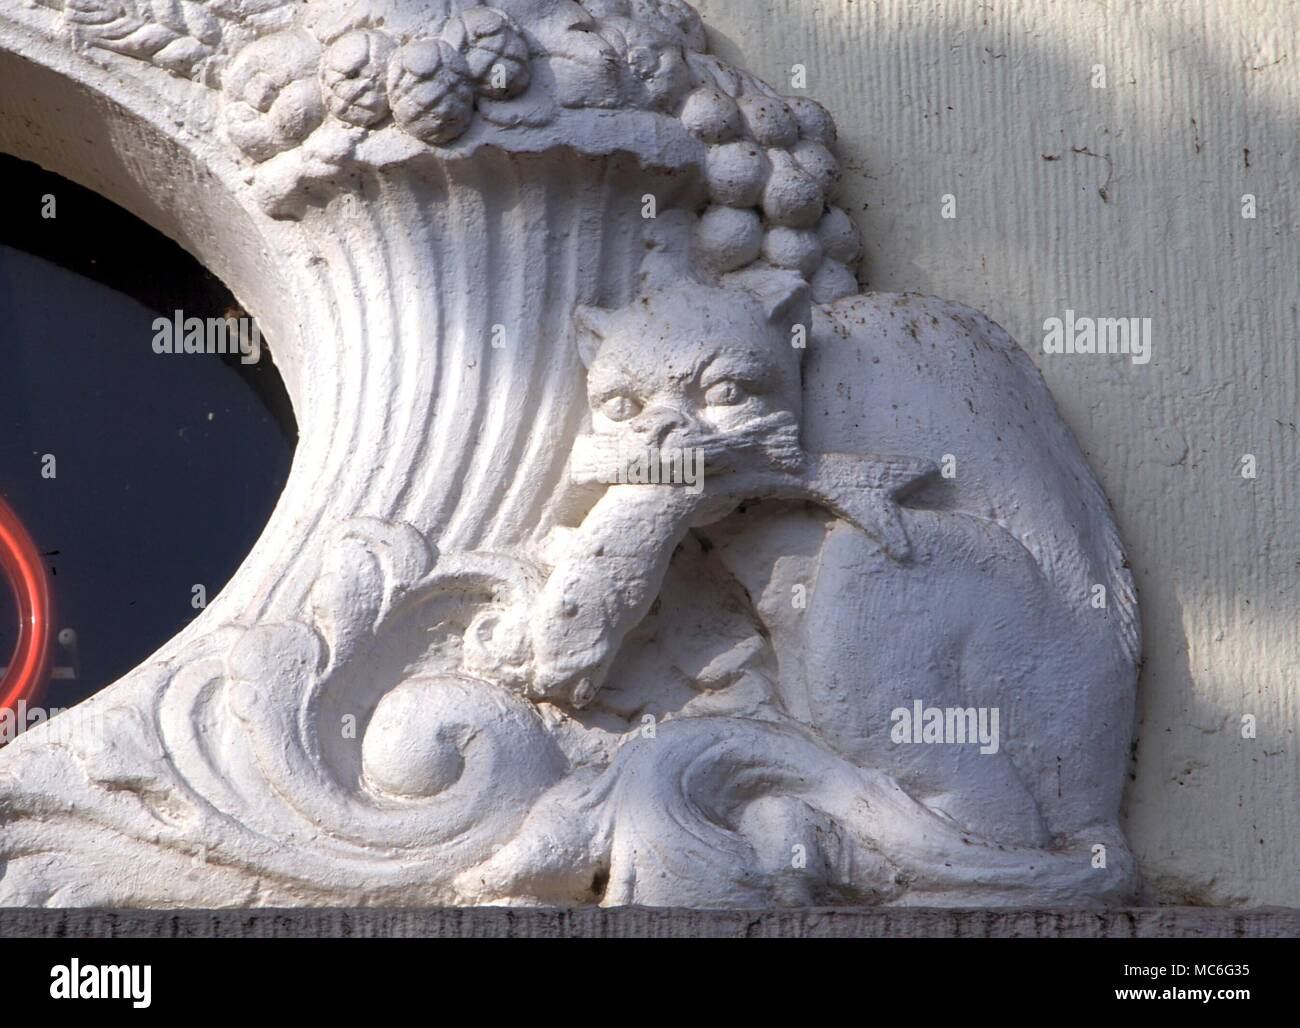 Animals cat with fish in its mouth relief carving above the